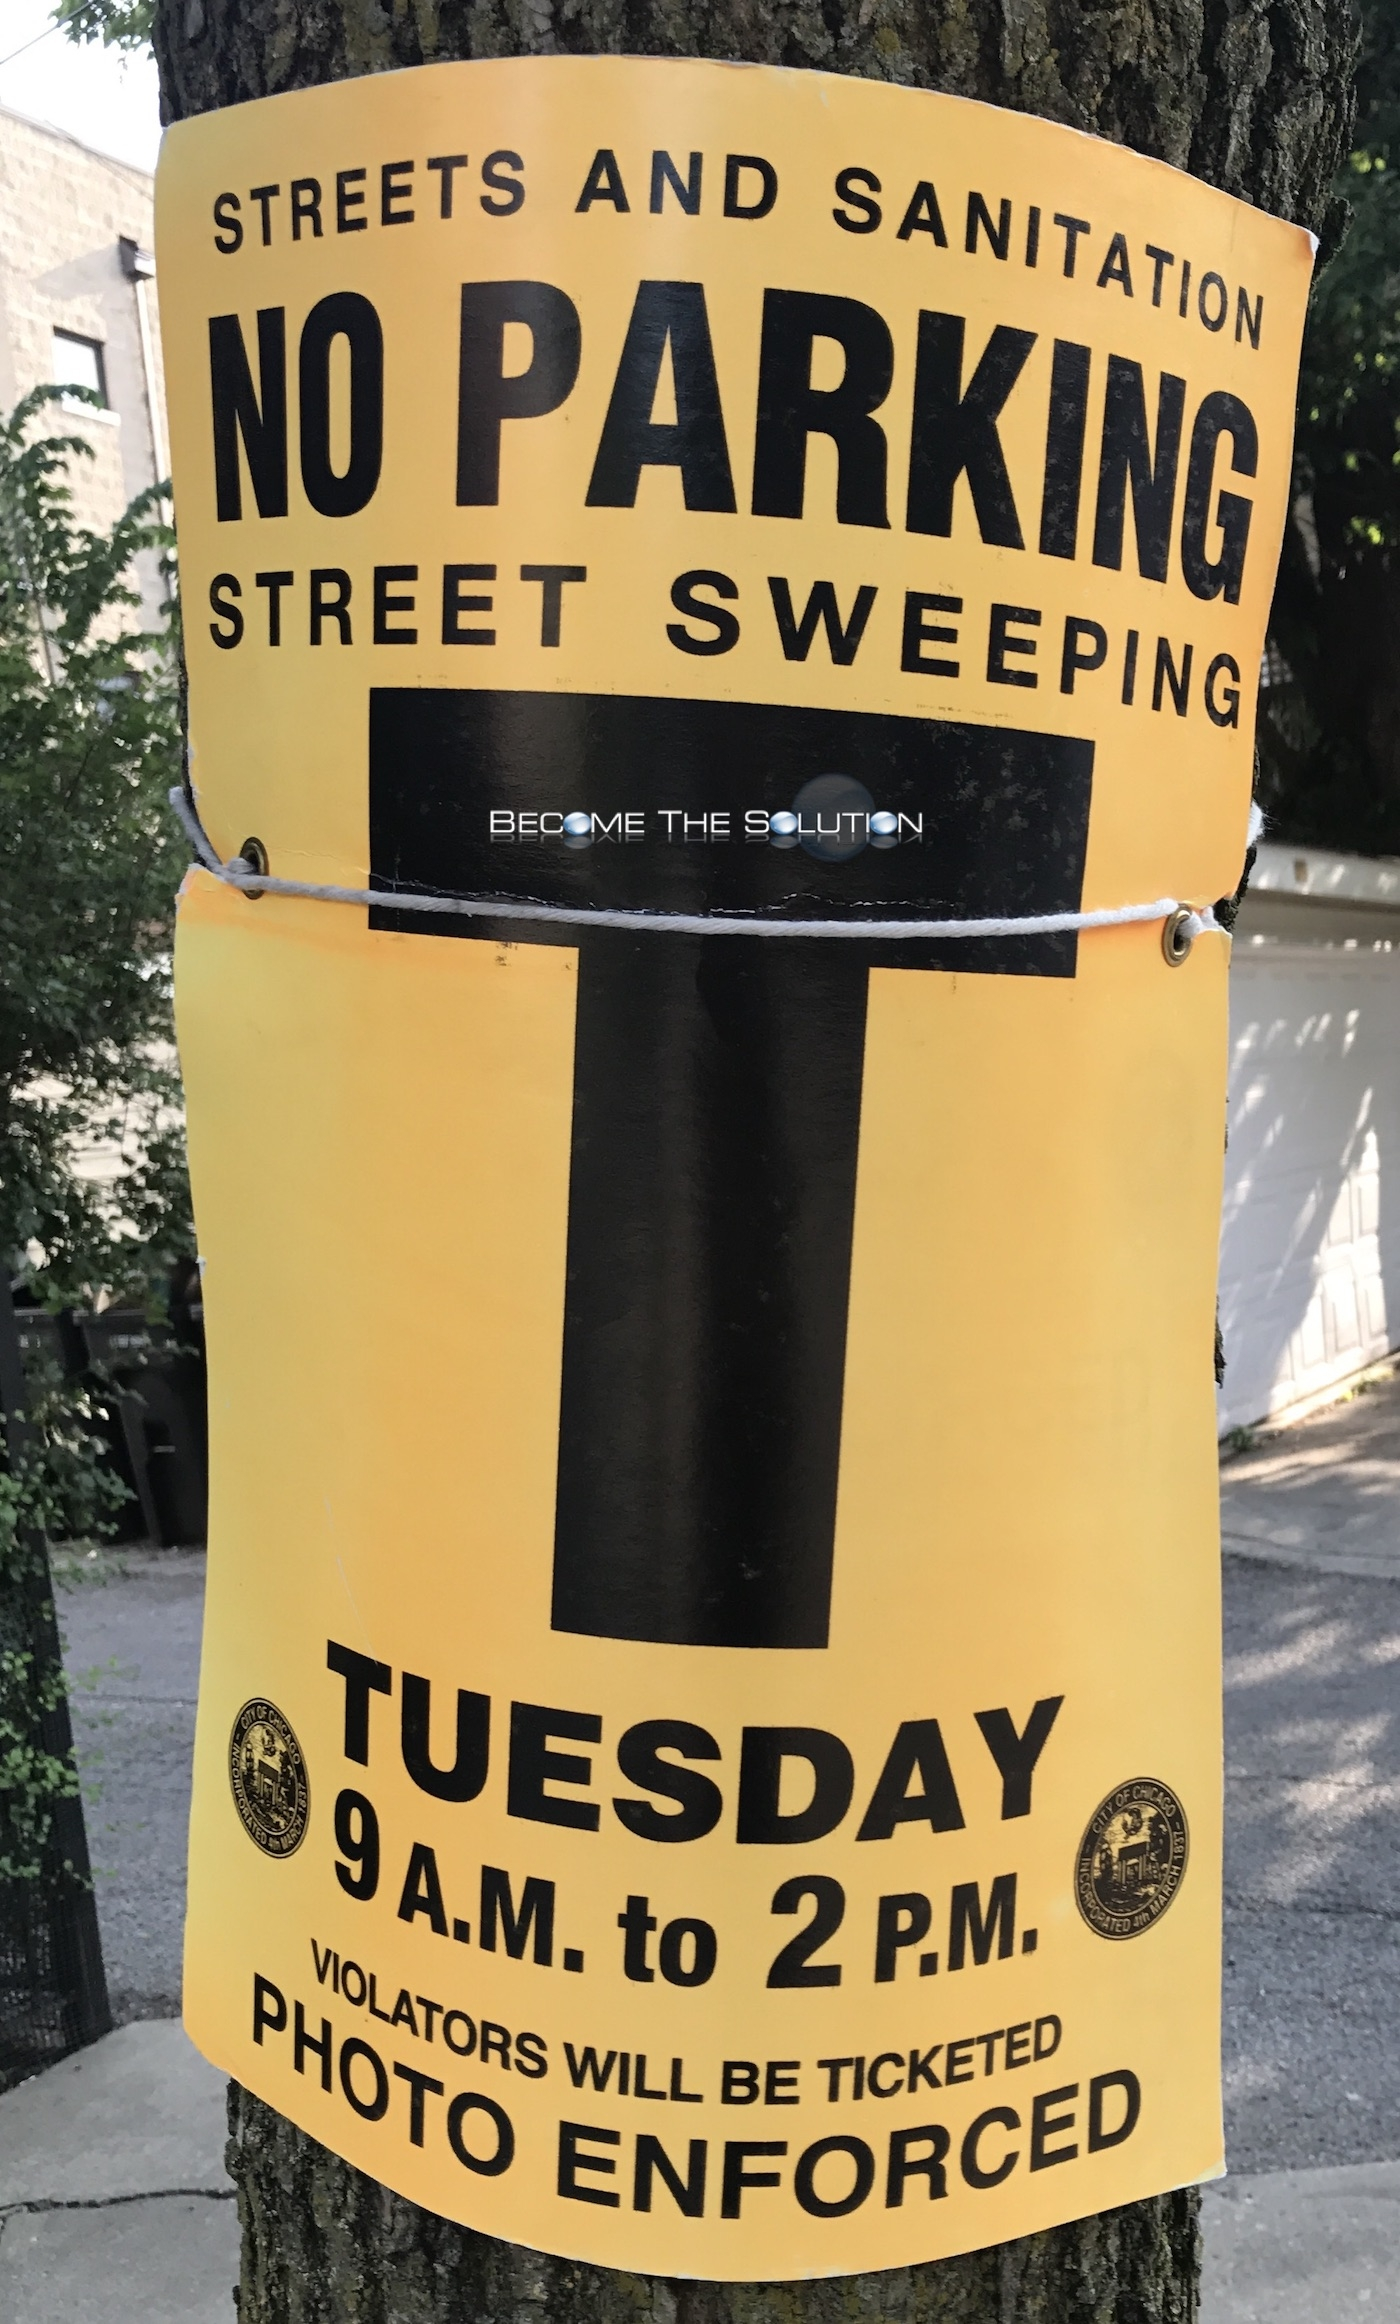 Chicago Streets And Sanitation No Parking Street Sweeping